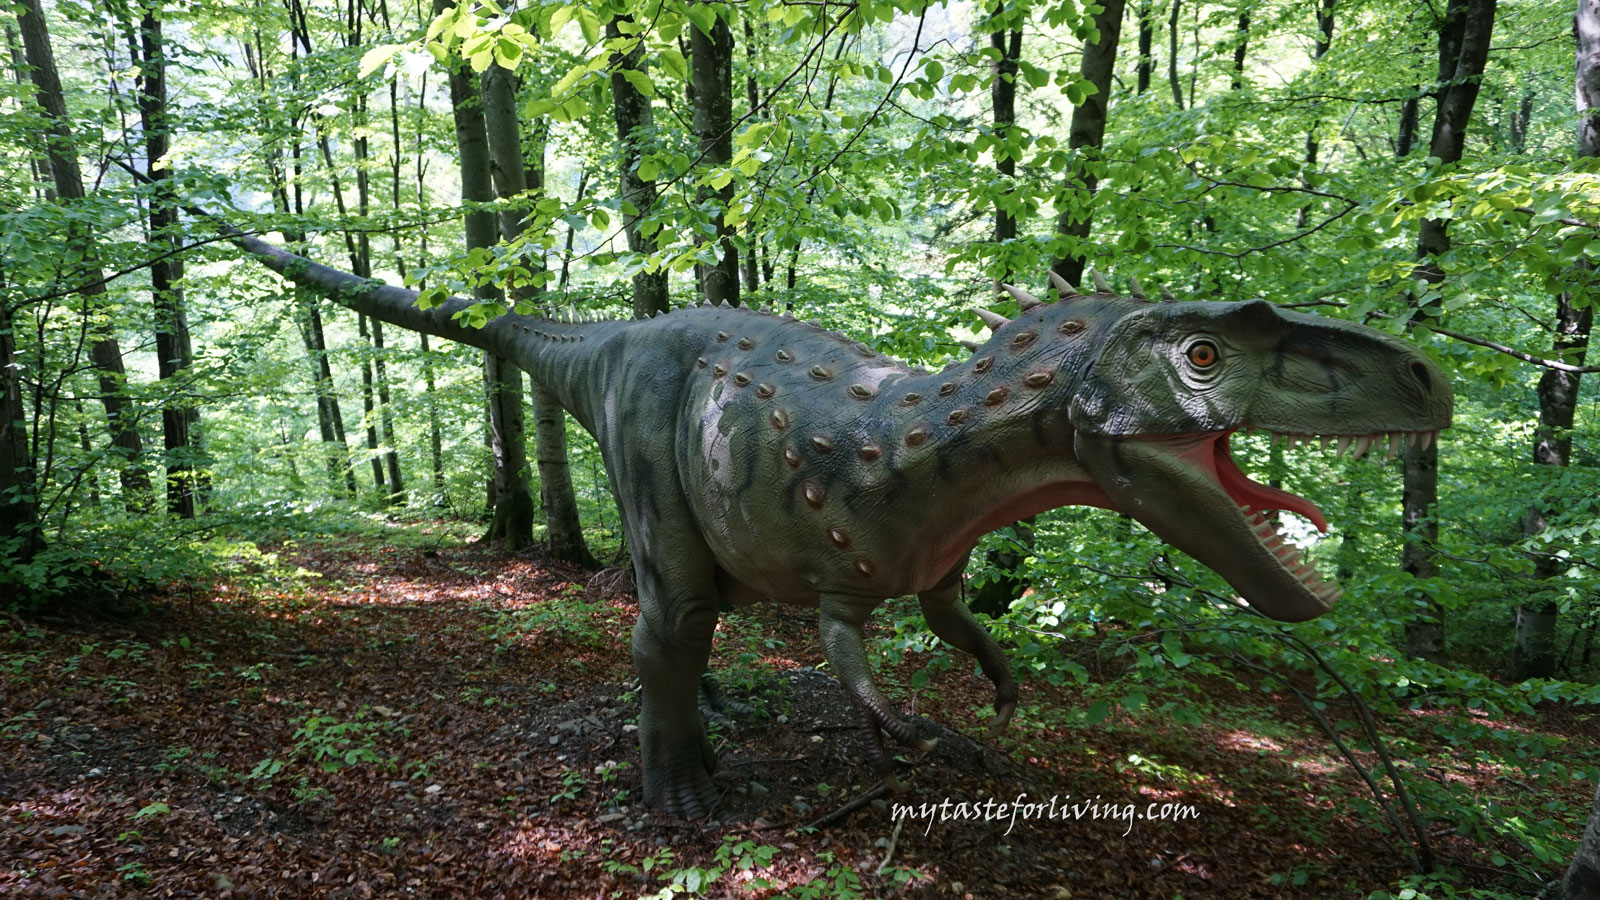 Dino Park in Rasnov, Romania is a recreation area with a museum part both indoors and outdoors, and is the largest park in southeastern Europe.